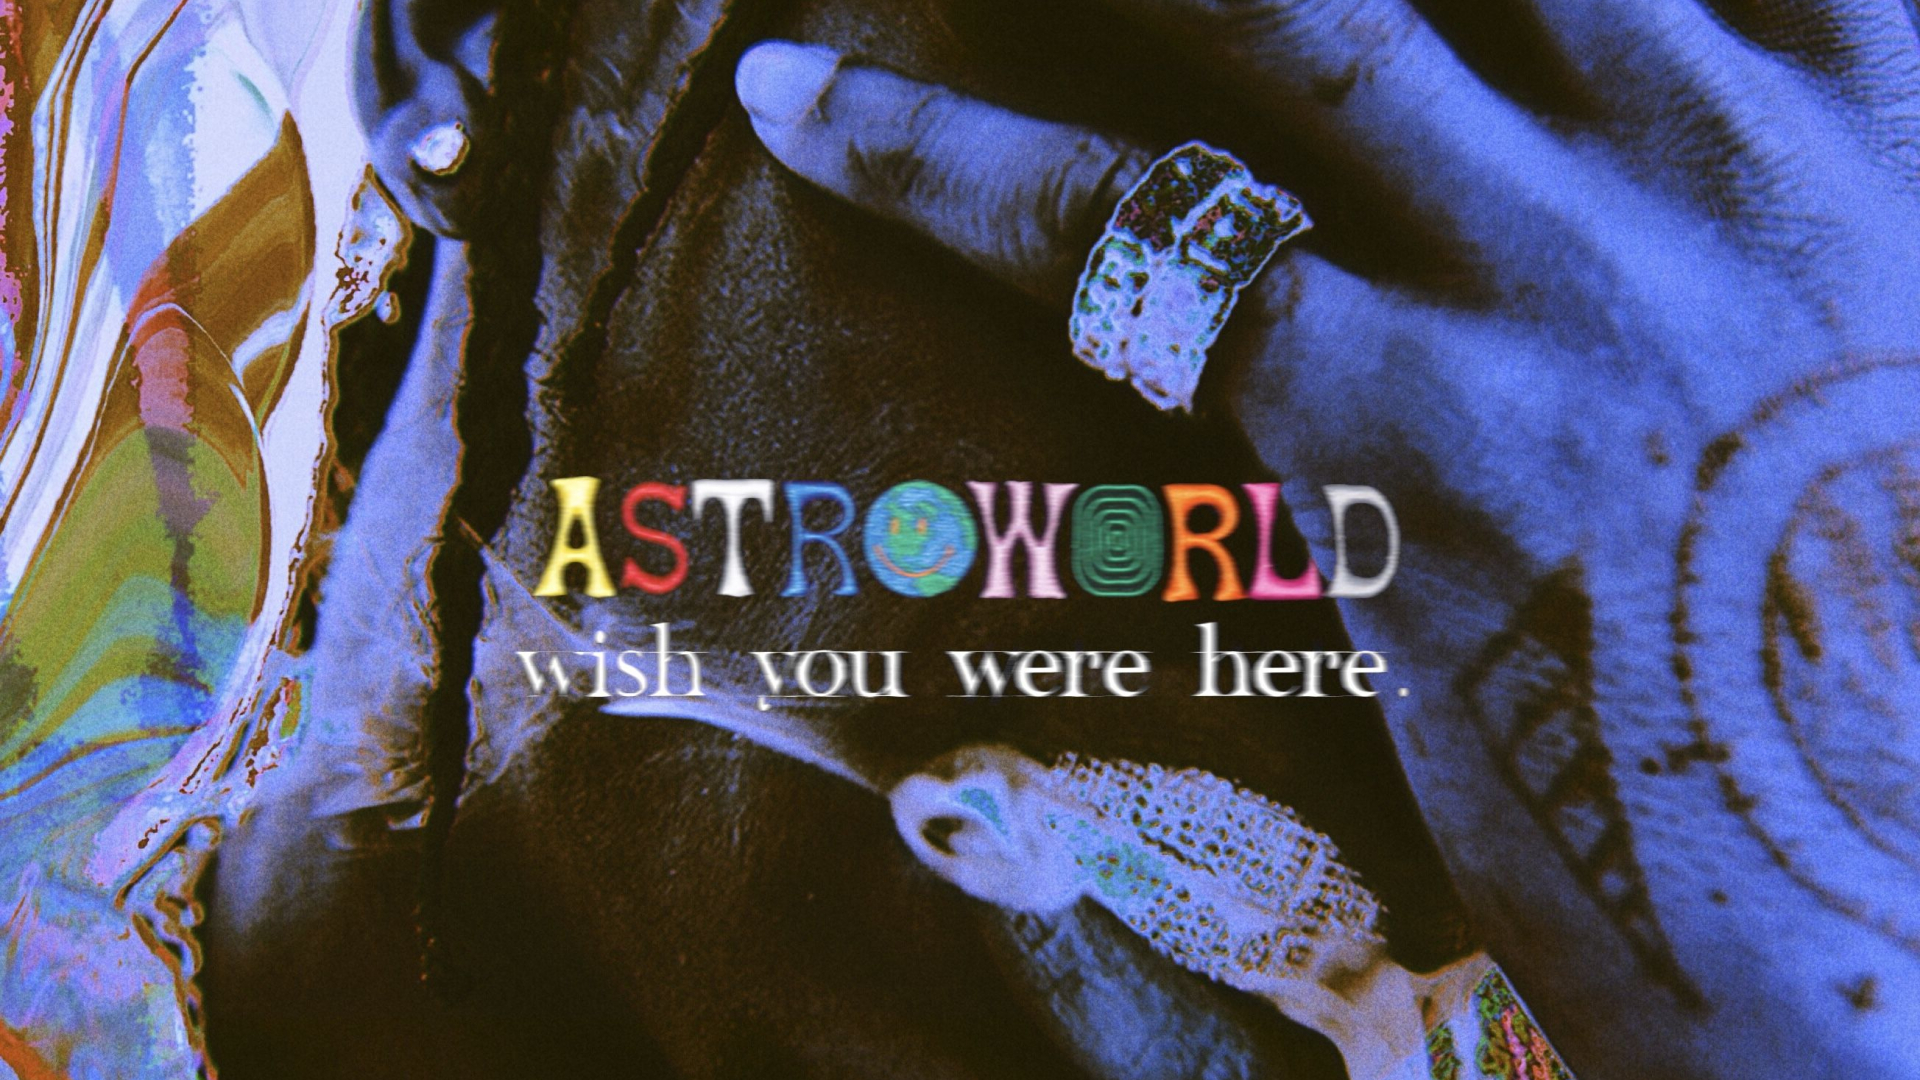 Free Download Travisscott Astroworld Wallpaper My Wallpapers In 2019 Rap 2608x4638 For Your Desktop Mobile Tablet Explore 47 Travis Scott Highest In The Room Wallpapers Travis Scott Highest In